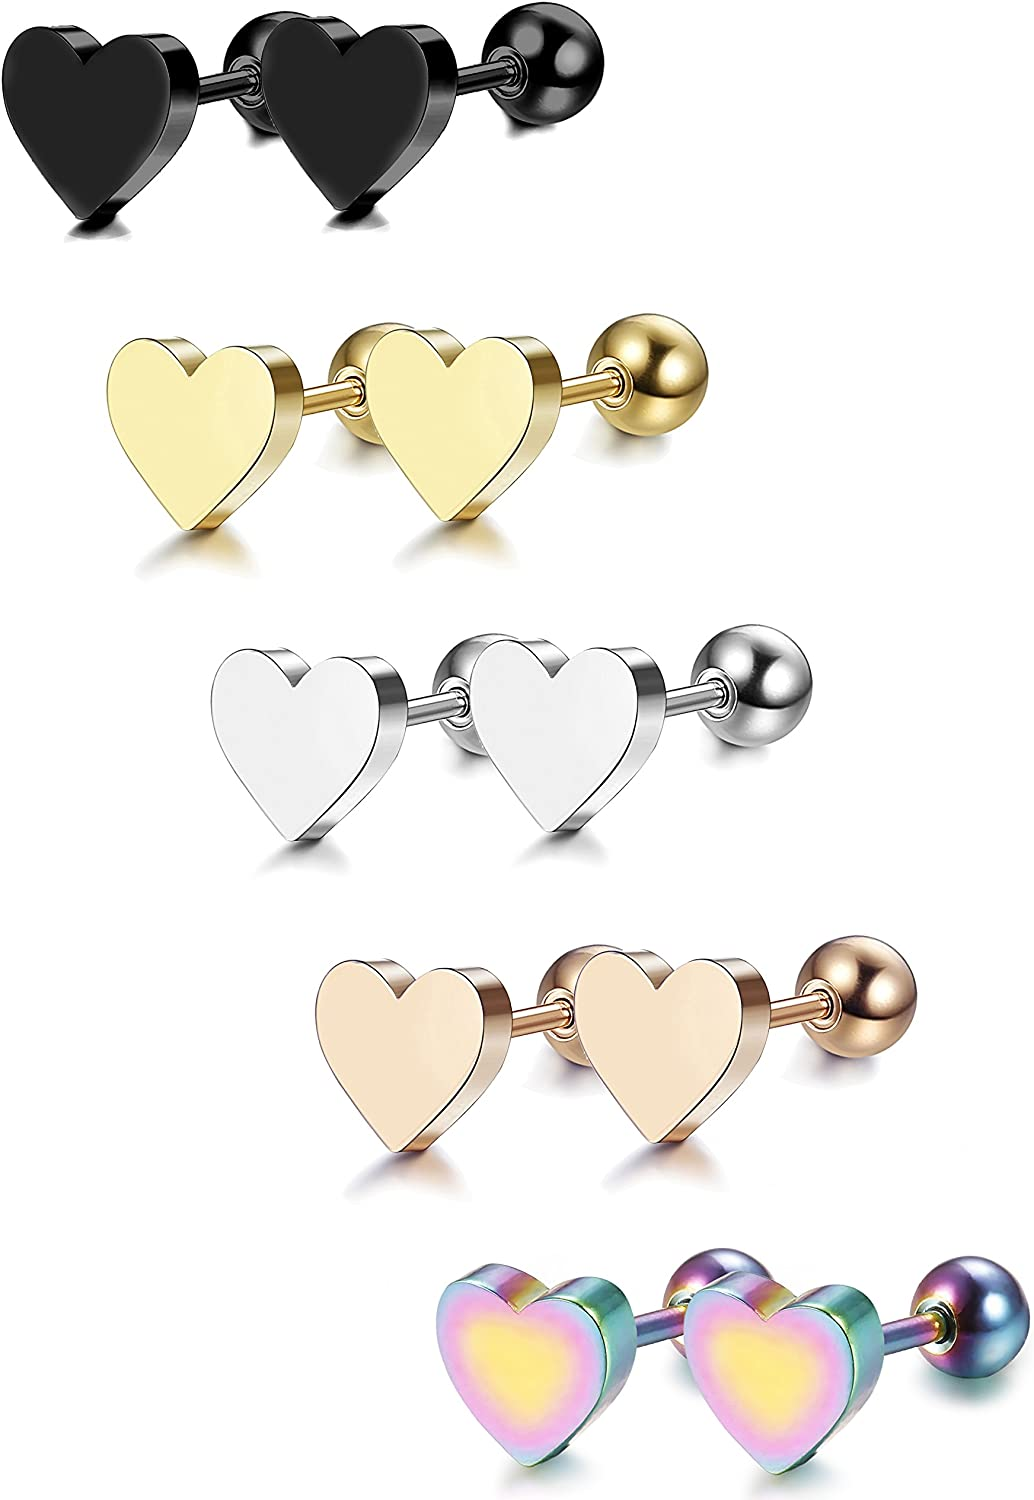 LOYALLOOK 5-6 Pairs Stainless Steel Heart Stud Earrings Barbell Piercing Studs for Women Men